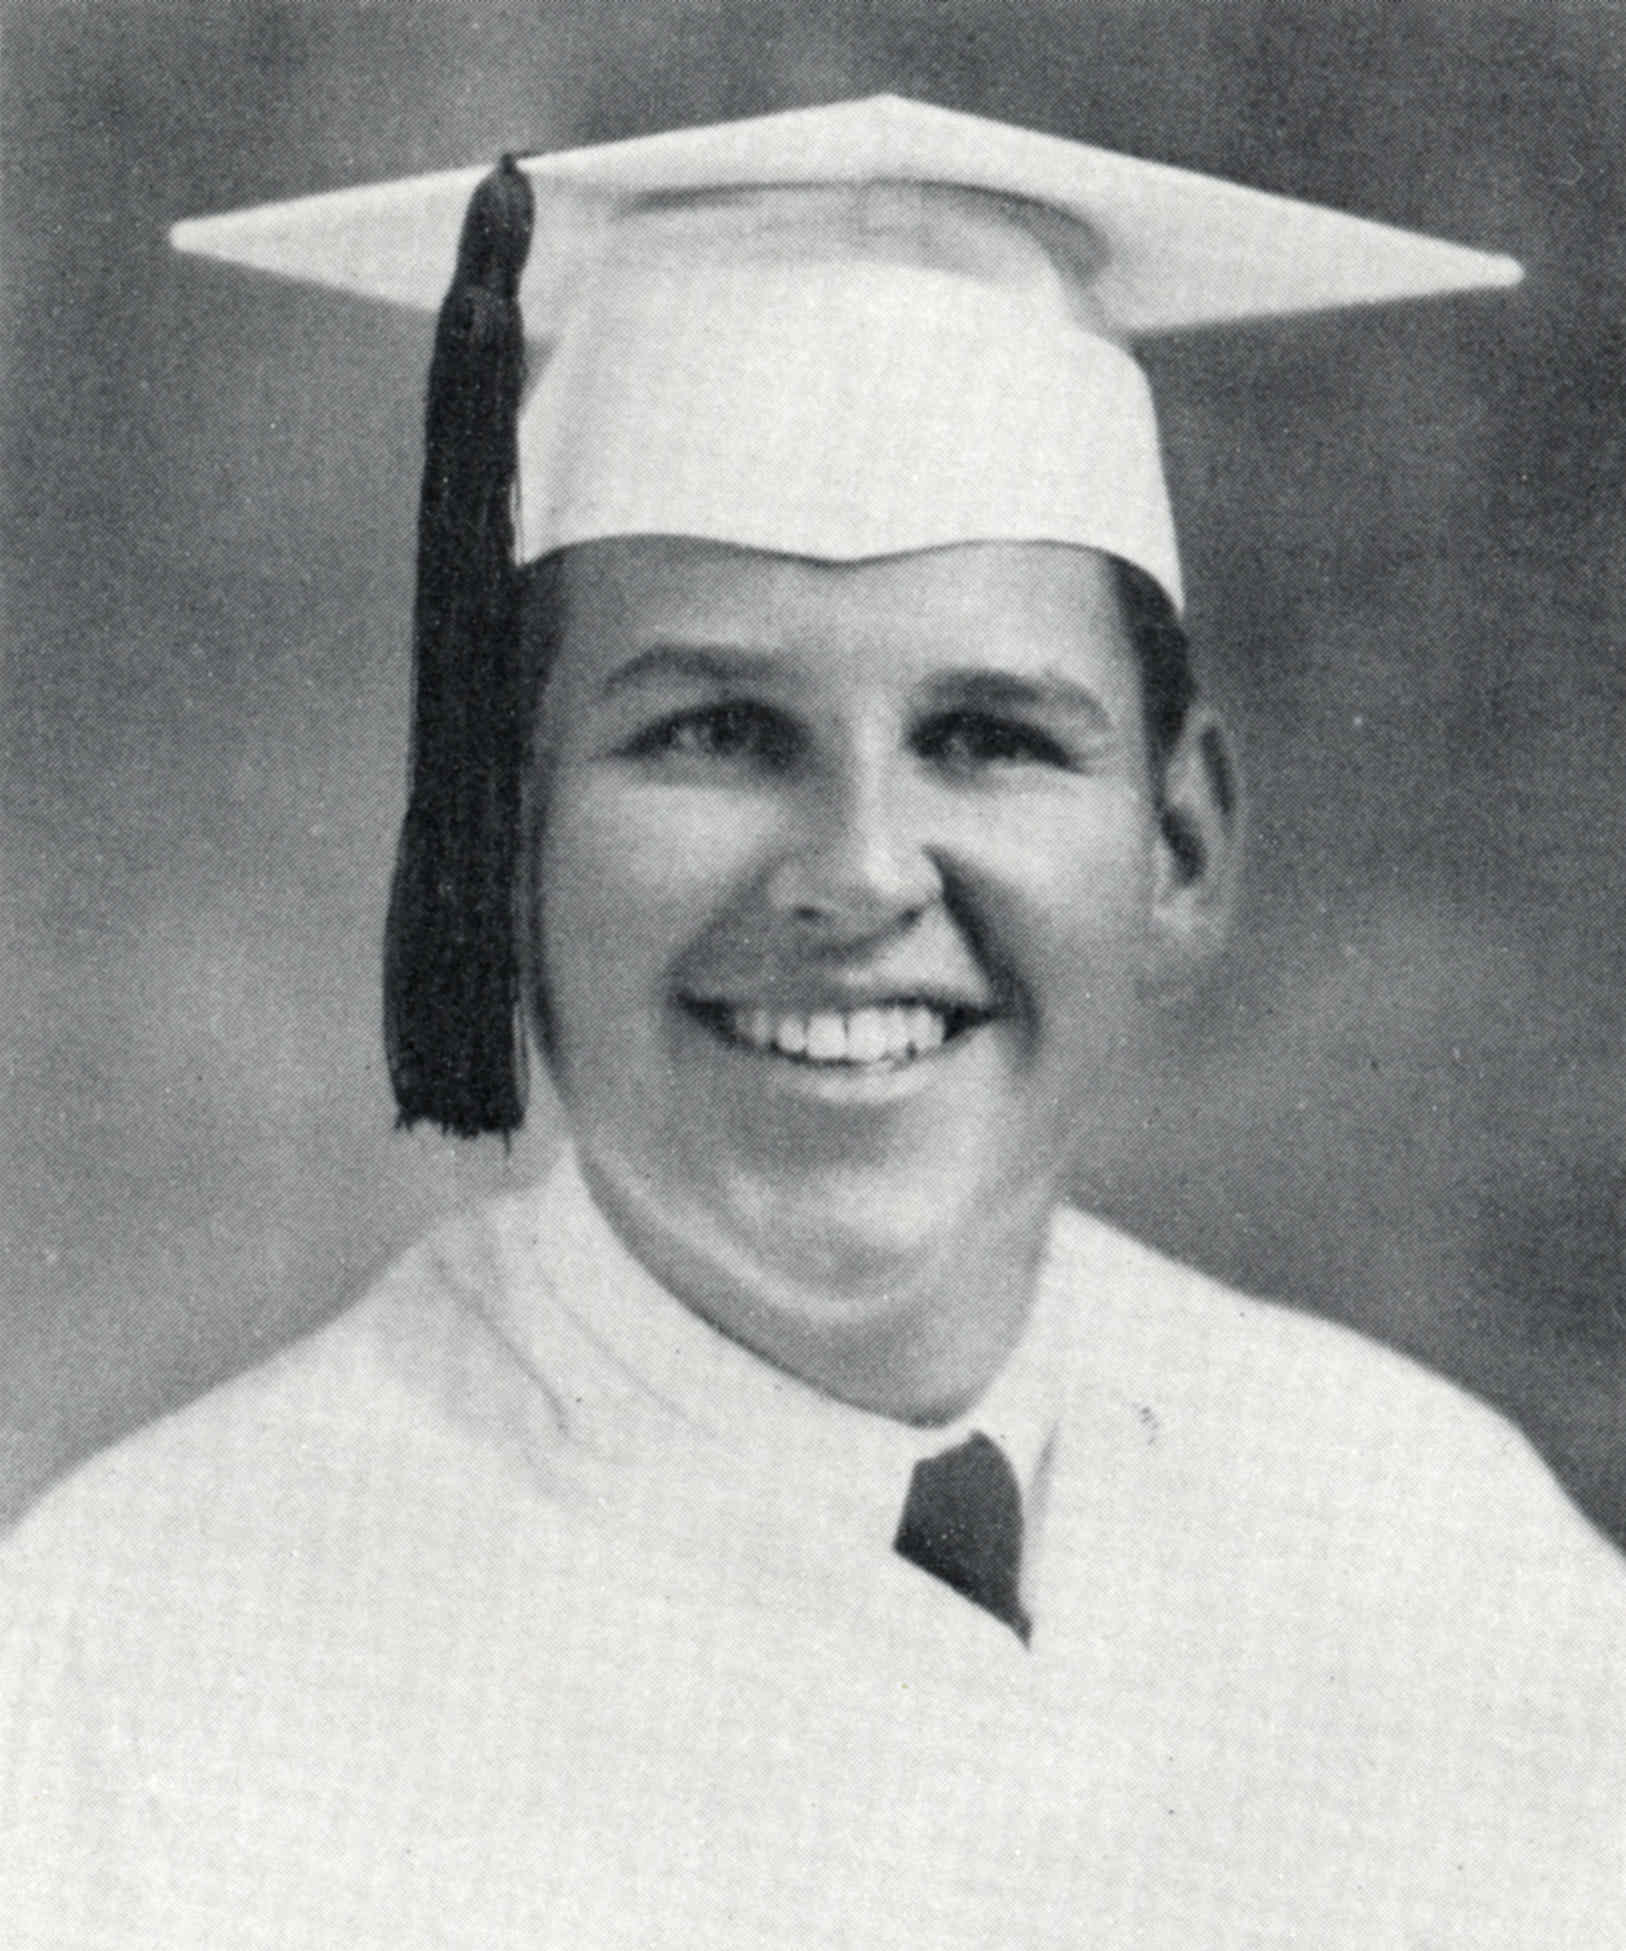 Paul Lynde 1944 graduation photo